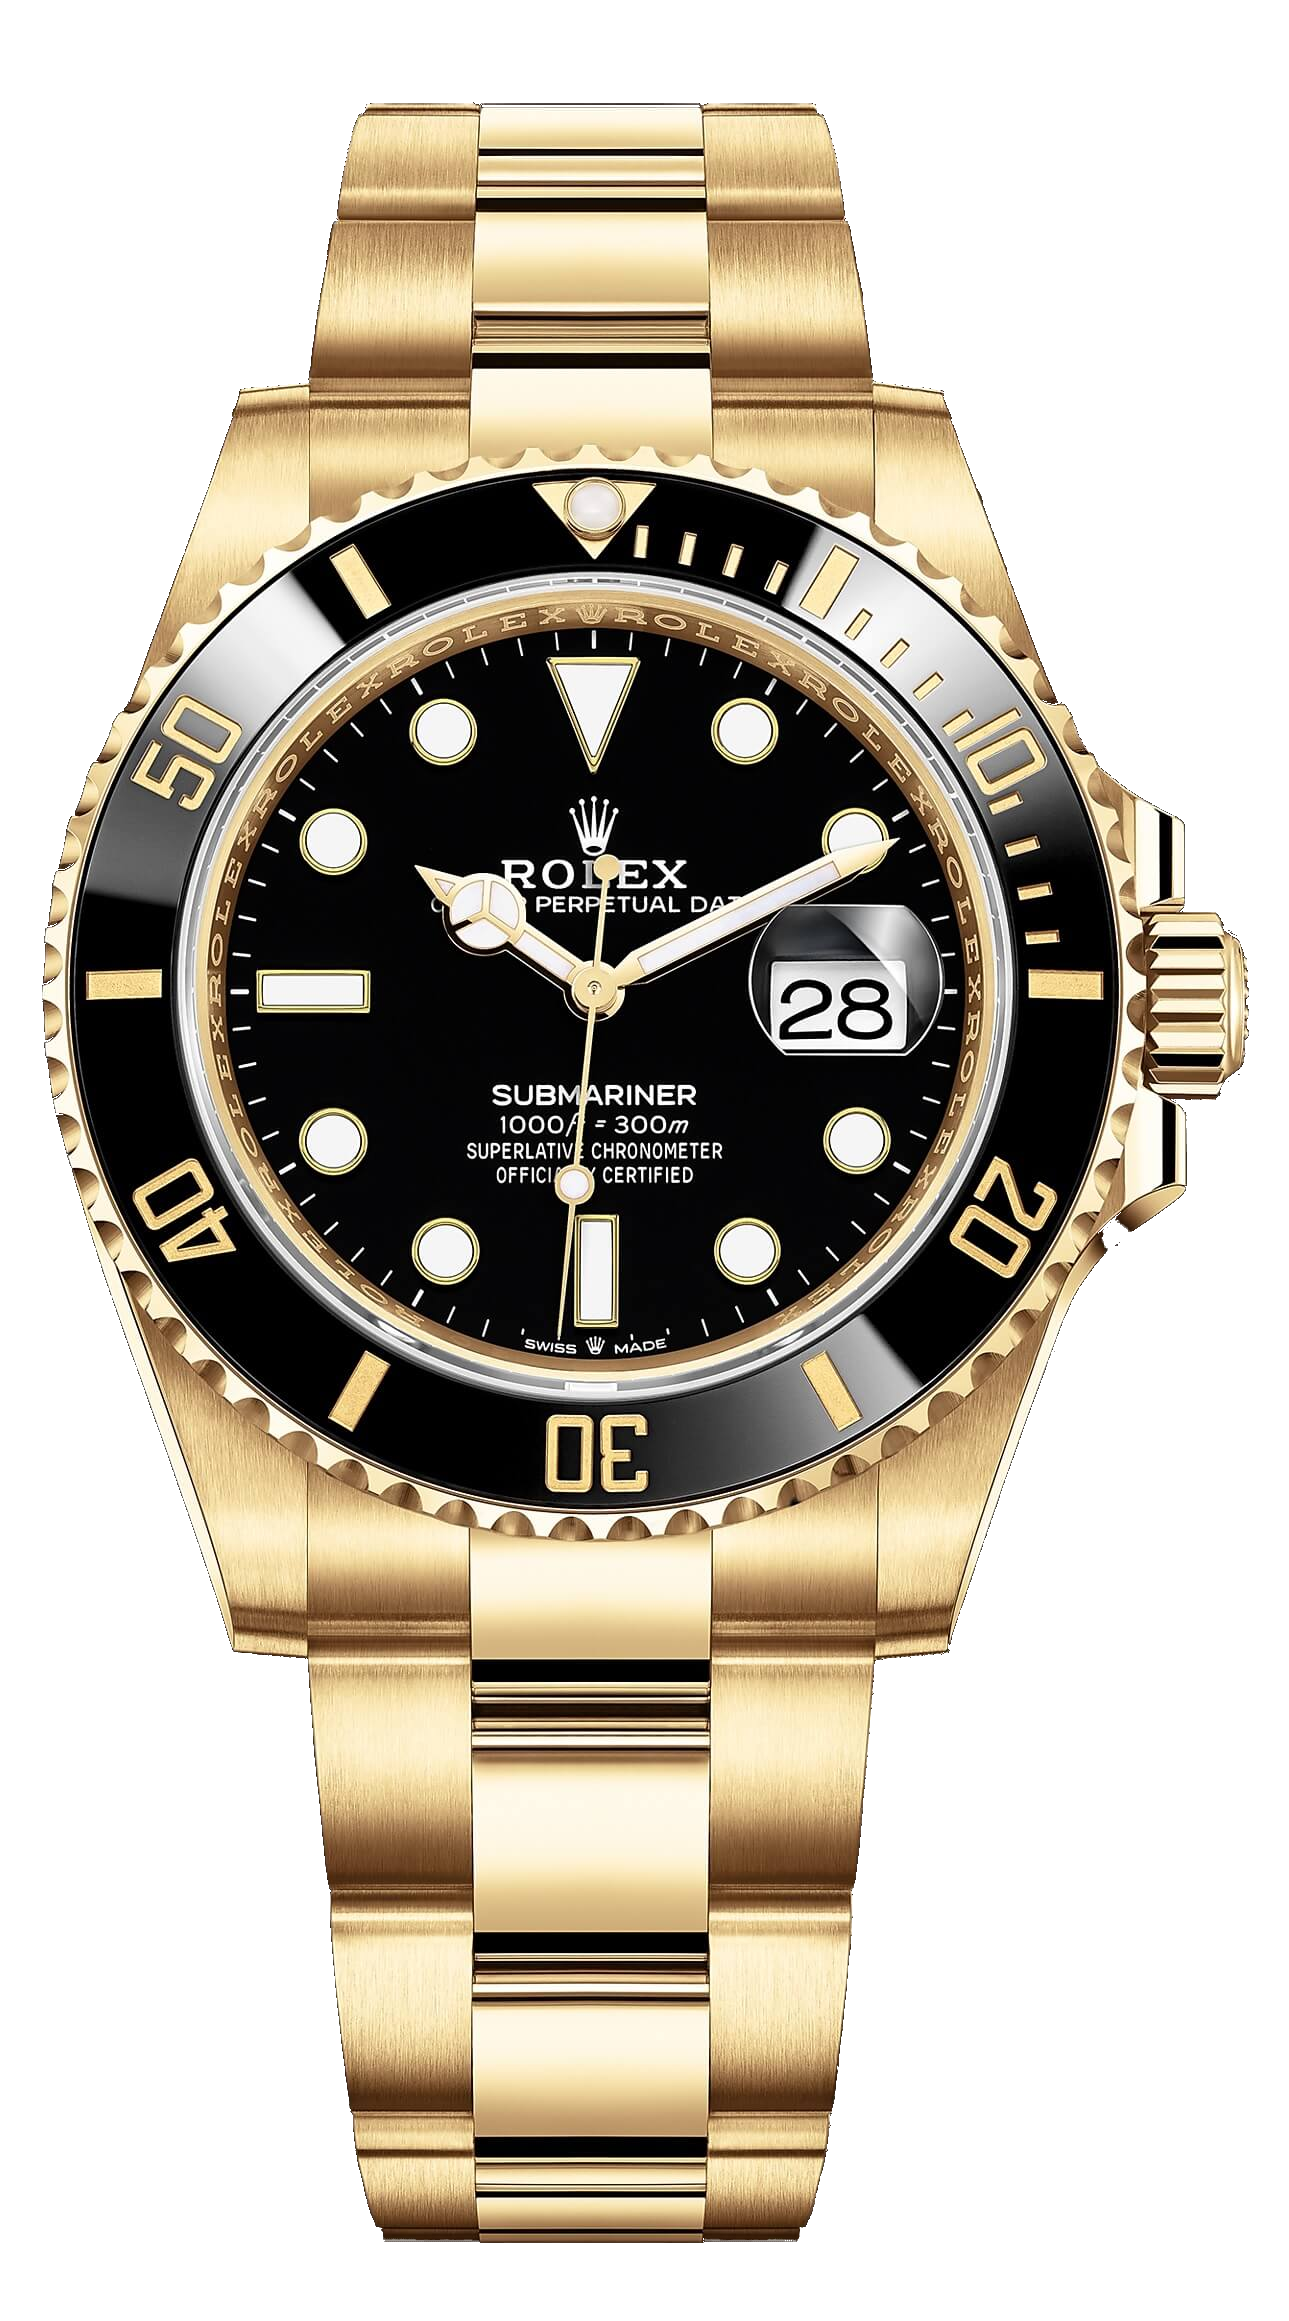 ROLEX BUYER NEAR ME -Vermillion Enterprises - Serving Brooksville, Crystal River, Dade City, Floral City, Gainesville, Holiday, Homosassa, Hudson, Inverness, Jacksonville, Land O Lakes, Lutz, Lecanto, New Port Richey, Odessa, Spring Hill, Tampa, Tarpon Springs, Palm Harbor, Wesley Chapel, Ocala,Orlando, Kissimmee, Zephyrhills - Gold Dealer. Coin Shop. Jewelry Buyer. Rolex Buyer. - WE BUY WATCHES! WRIST & POCKET WATCHES - GOLD, SILVER, & PLATINUM. Cash For Gold. Scrap Gold. Gold Dealer Near Me. Scrap Gold Dealer Near Me. Rolex Buyer Near Me. Jewelry Buyer Near Me. Scrap Gold Near Me. Local Dealer: 5324 Spring Hill Drive, Spring Hill, FL 34606 Ph: 352-585-9772 Vermillion Enterprises is OPEN for BLACK FRIDAY!!! Make Extra Cash Today For Your Holiday Shopping! We BUY ALL Gold, Silver, & Platinum Jewelry. Scrap Gold jewelry. Scrap Jewelry. Pocket Watches, Wrist Watches, Necklaces, Chains, Bracelets, Rings, Earrings, Dental Gold - Bridges, Crowns & Fillings. Cash For Gold Near Me. Cash For Gold Spring Hill. Cash For Gold Serving Brooksville, Crystal River, Dade CIty, Floral City, Holiday FL, Homosassa, Hudson FL, Inverness FL, Gainesville, Land O Lakes, Lecanto, Lutz FL, New Port Richey, Odessa FL, Palm Harbor, Tarpon Springs, Tampa, Clearwater, Spring Hill, Wesley Chapel, Zephryhills. Make Extra Cash For The Holidays - Christmas, Black Friday Sales, Jewelry Buyer Near Me, Rolex Buyer Near Me, Coin Shop Near Me. 5324 Spring Hill Drive, Spring Hill, FL 34606 - Ph: 352-585-9772. Website: www.vermillion-enterprises.com